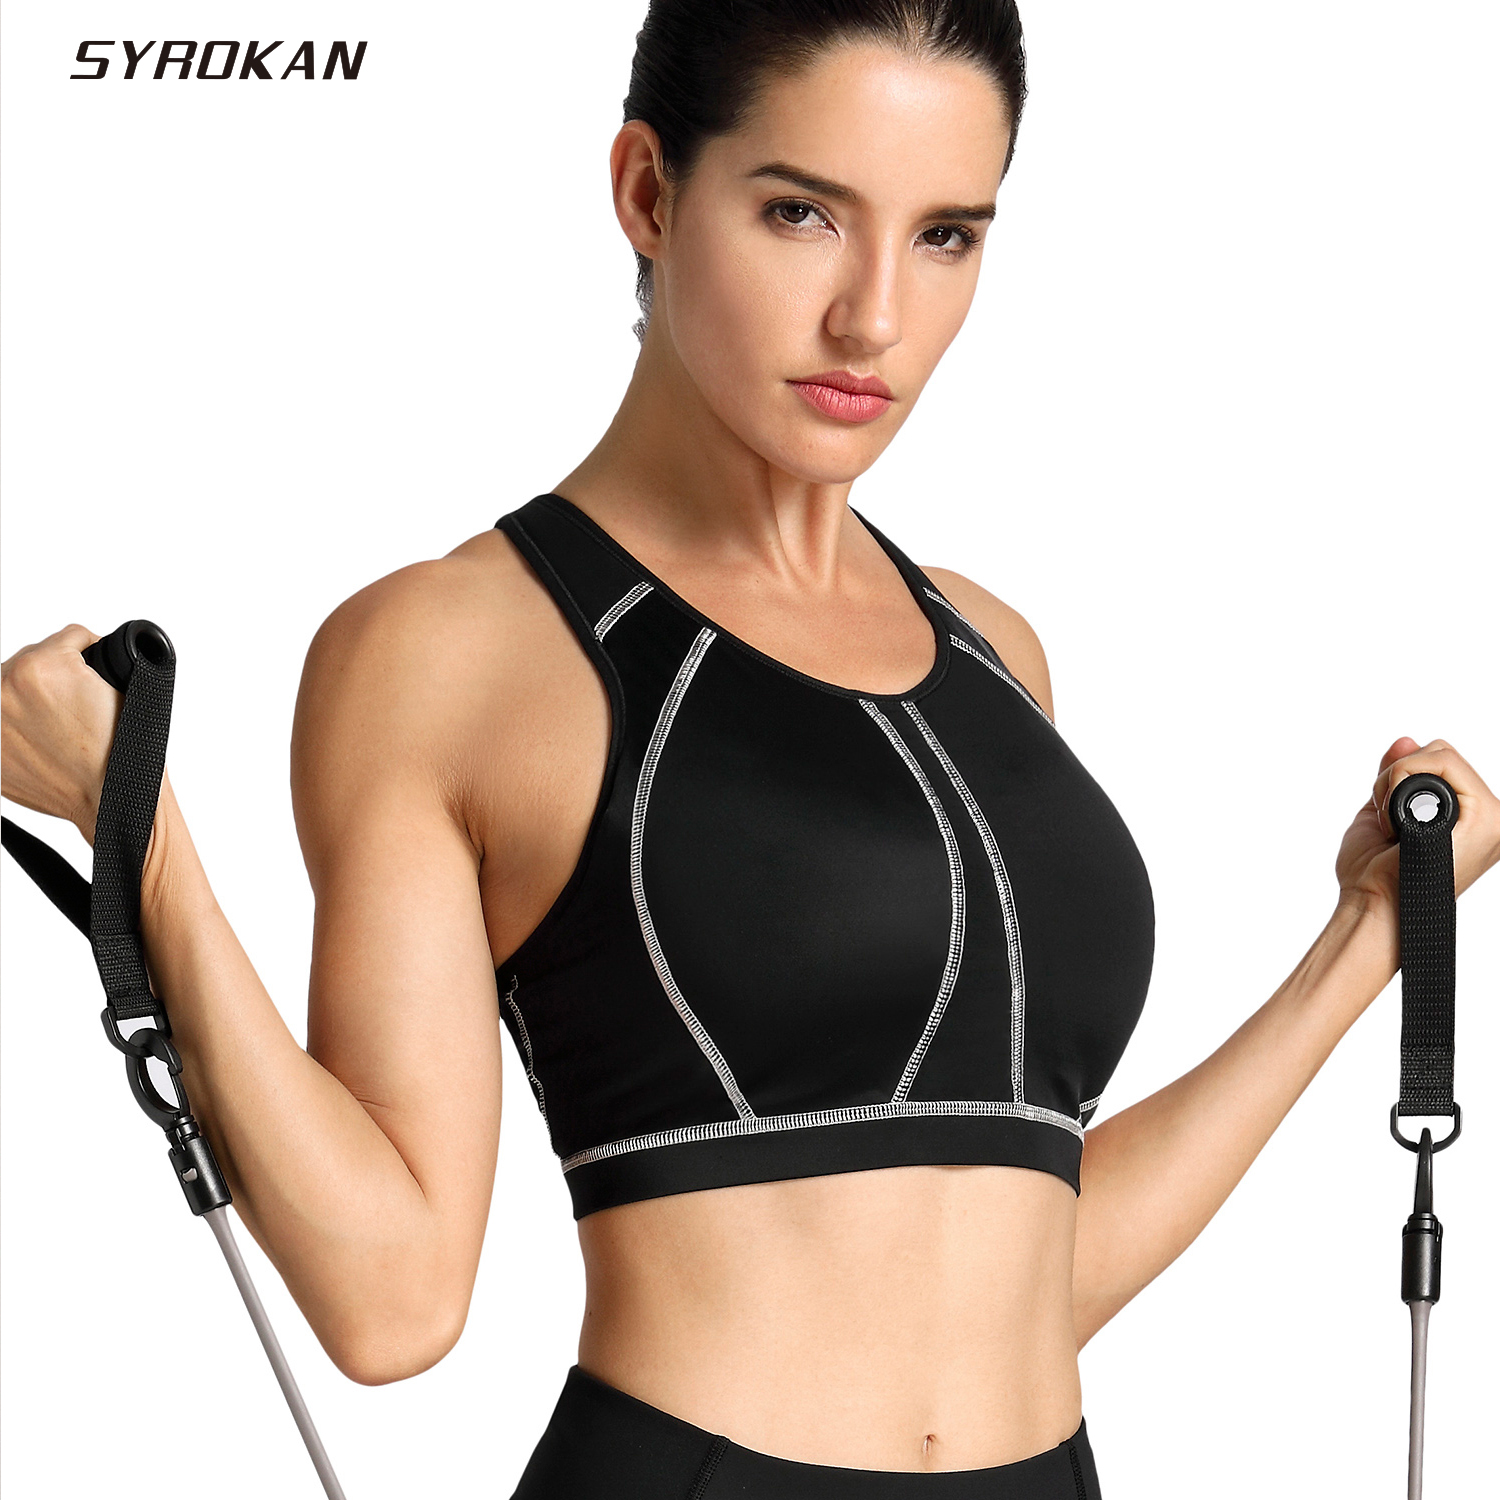 SYROKAN Women's medium impact Full Coverage Molded Cup Wire Free Sports Bra